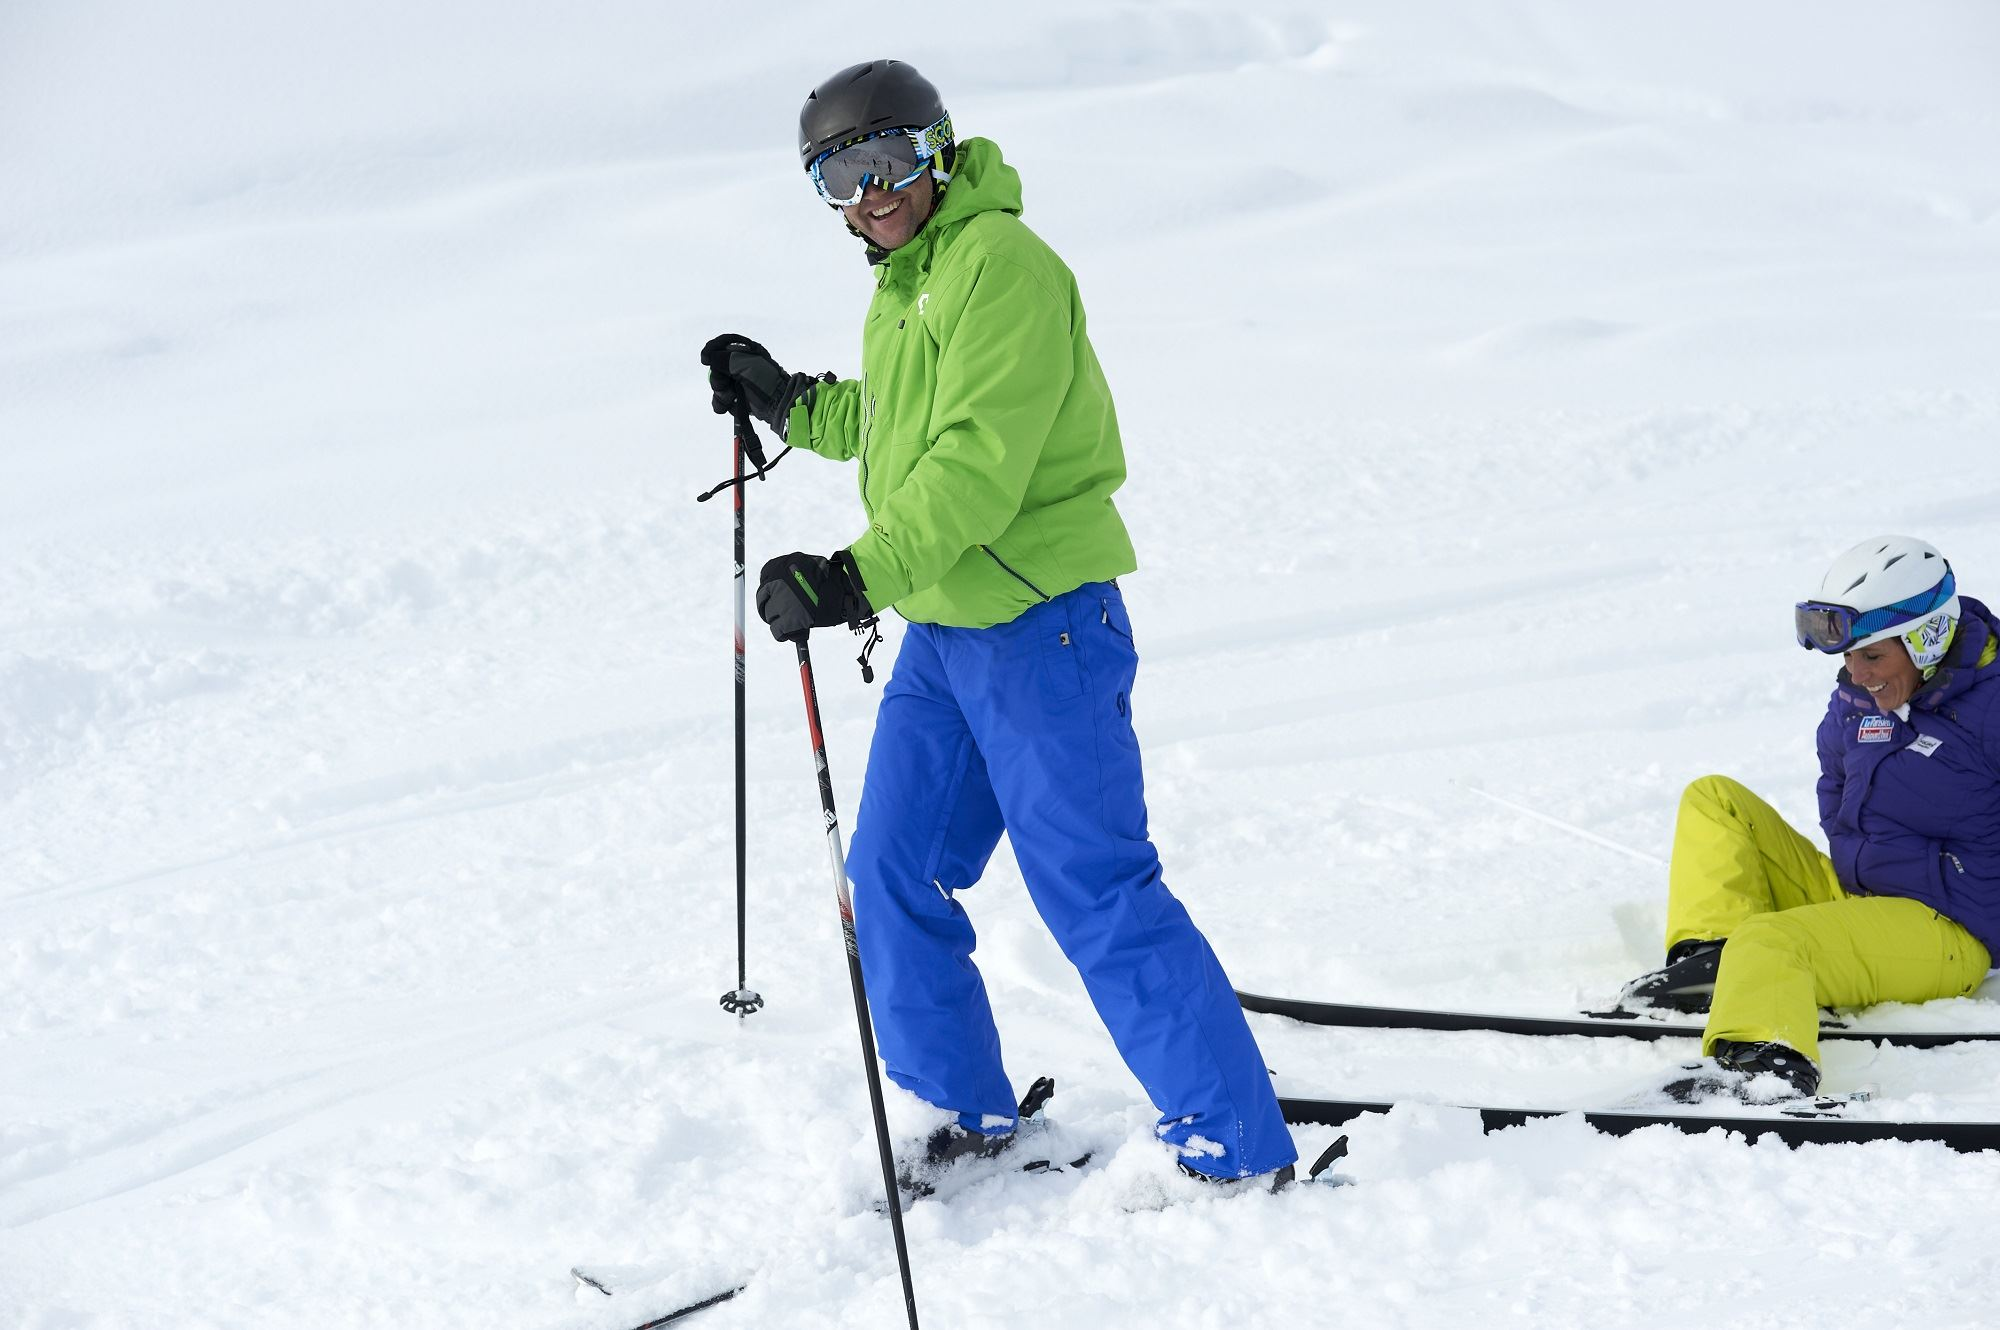 Skiing for dummies